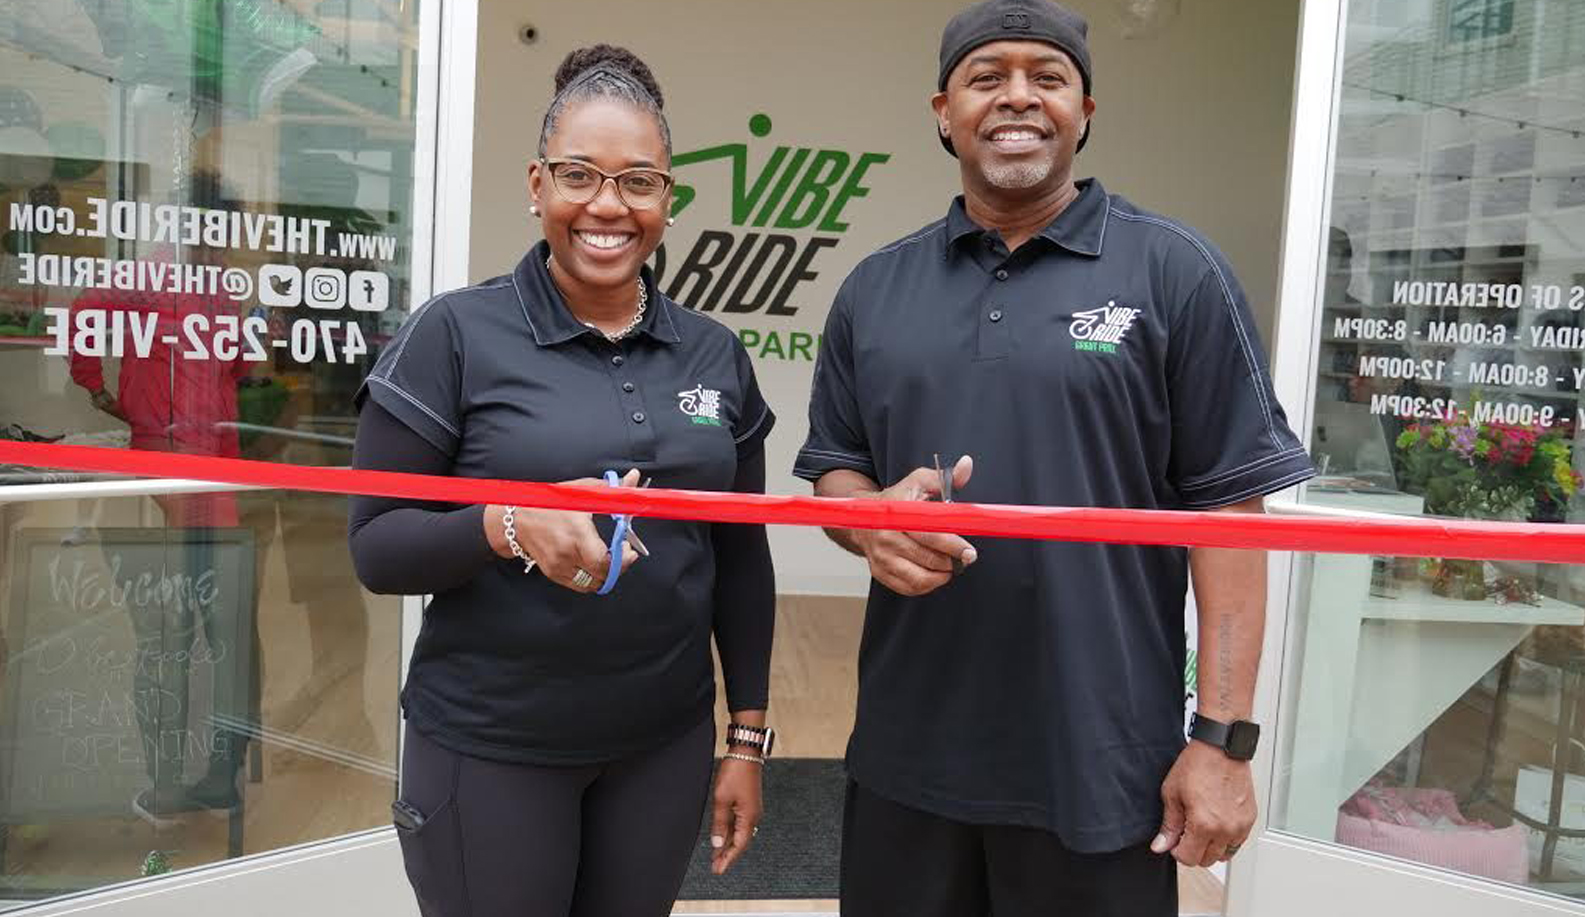 Indoor-Cycling Studio Rolls into Atlanta's Grant Park official grand opening event